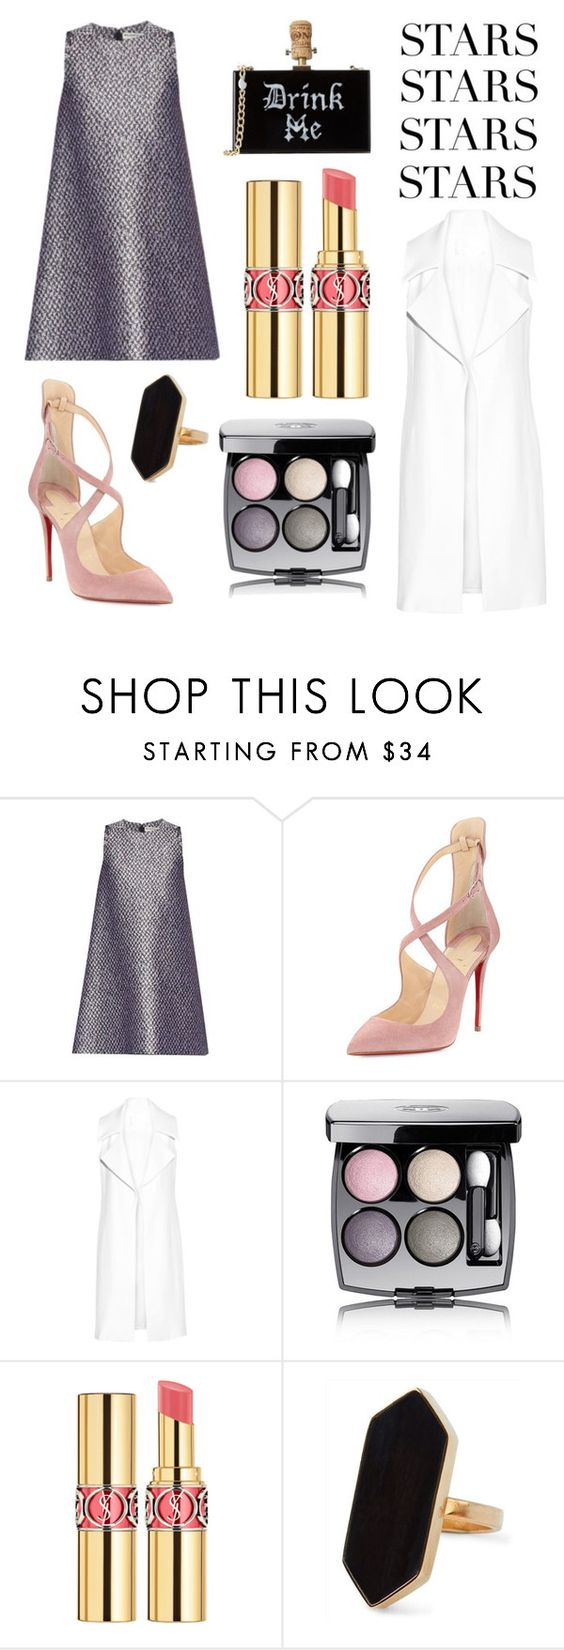 """Untitled #30"" by messymushroom ❤ liked on Polyvore featuring Balenciaga, Christian Louboutin, Cushnie Et Ochs, Chanel, Yves Saint Laurent and Jaeger"